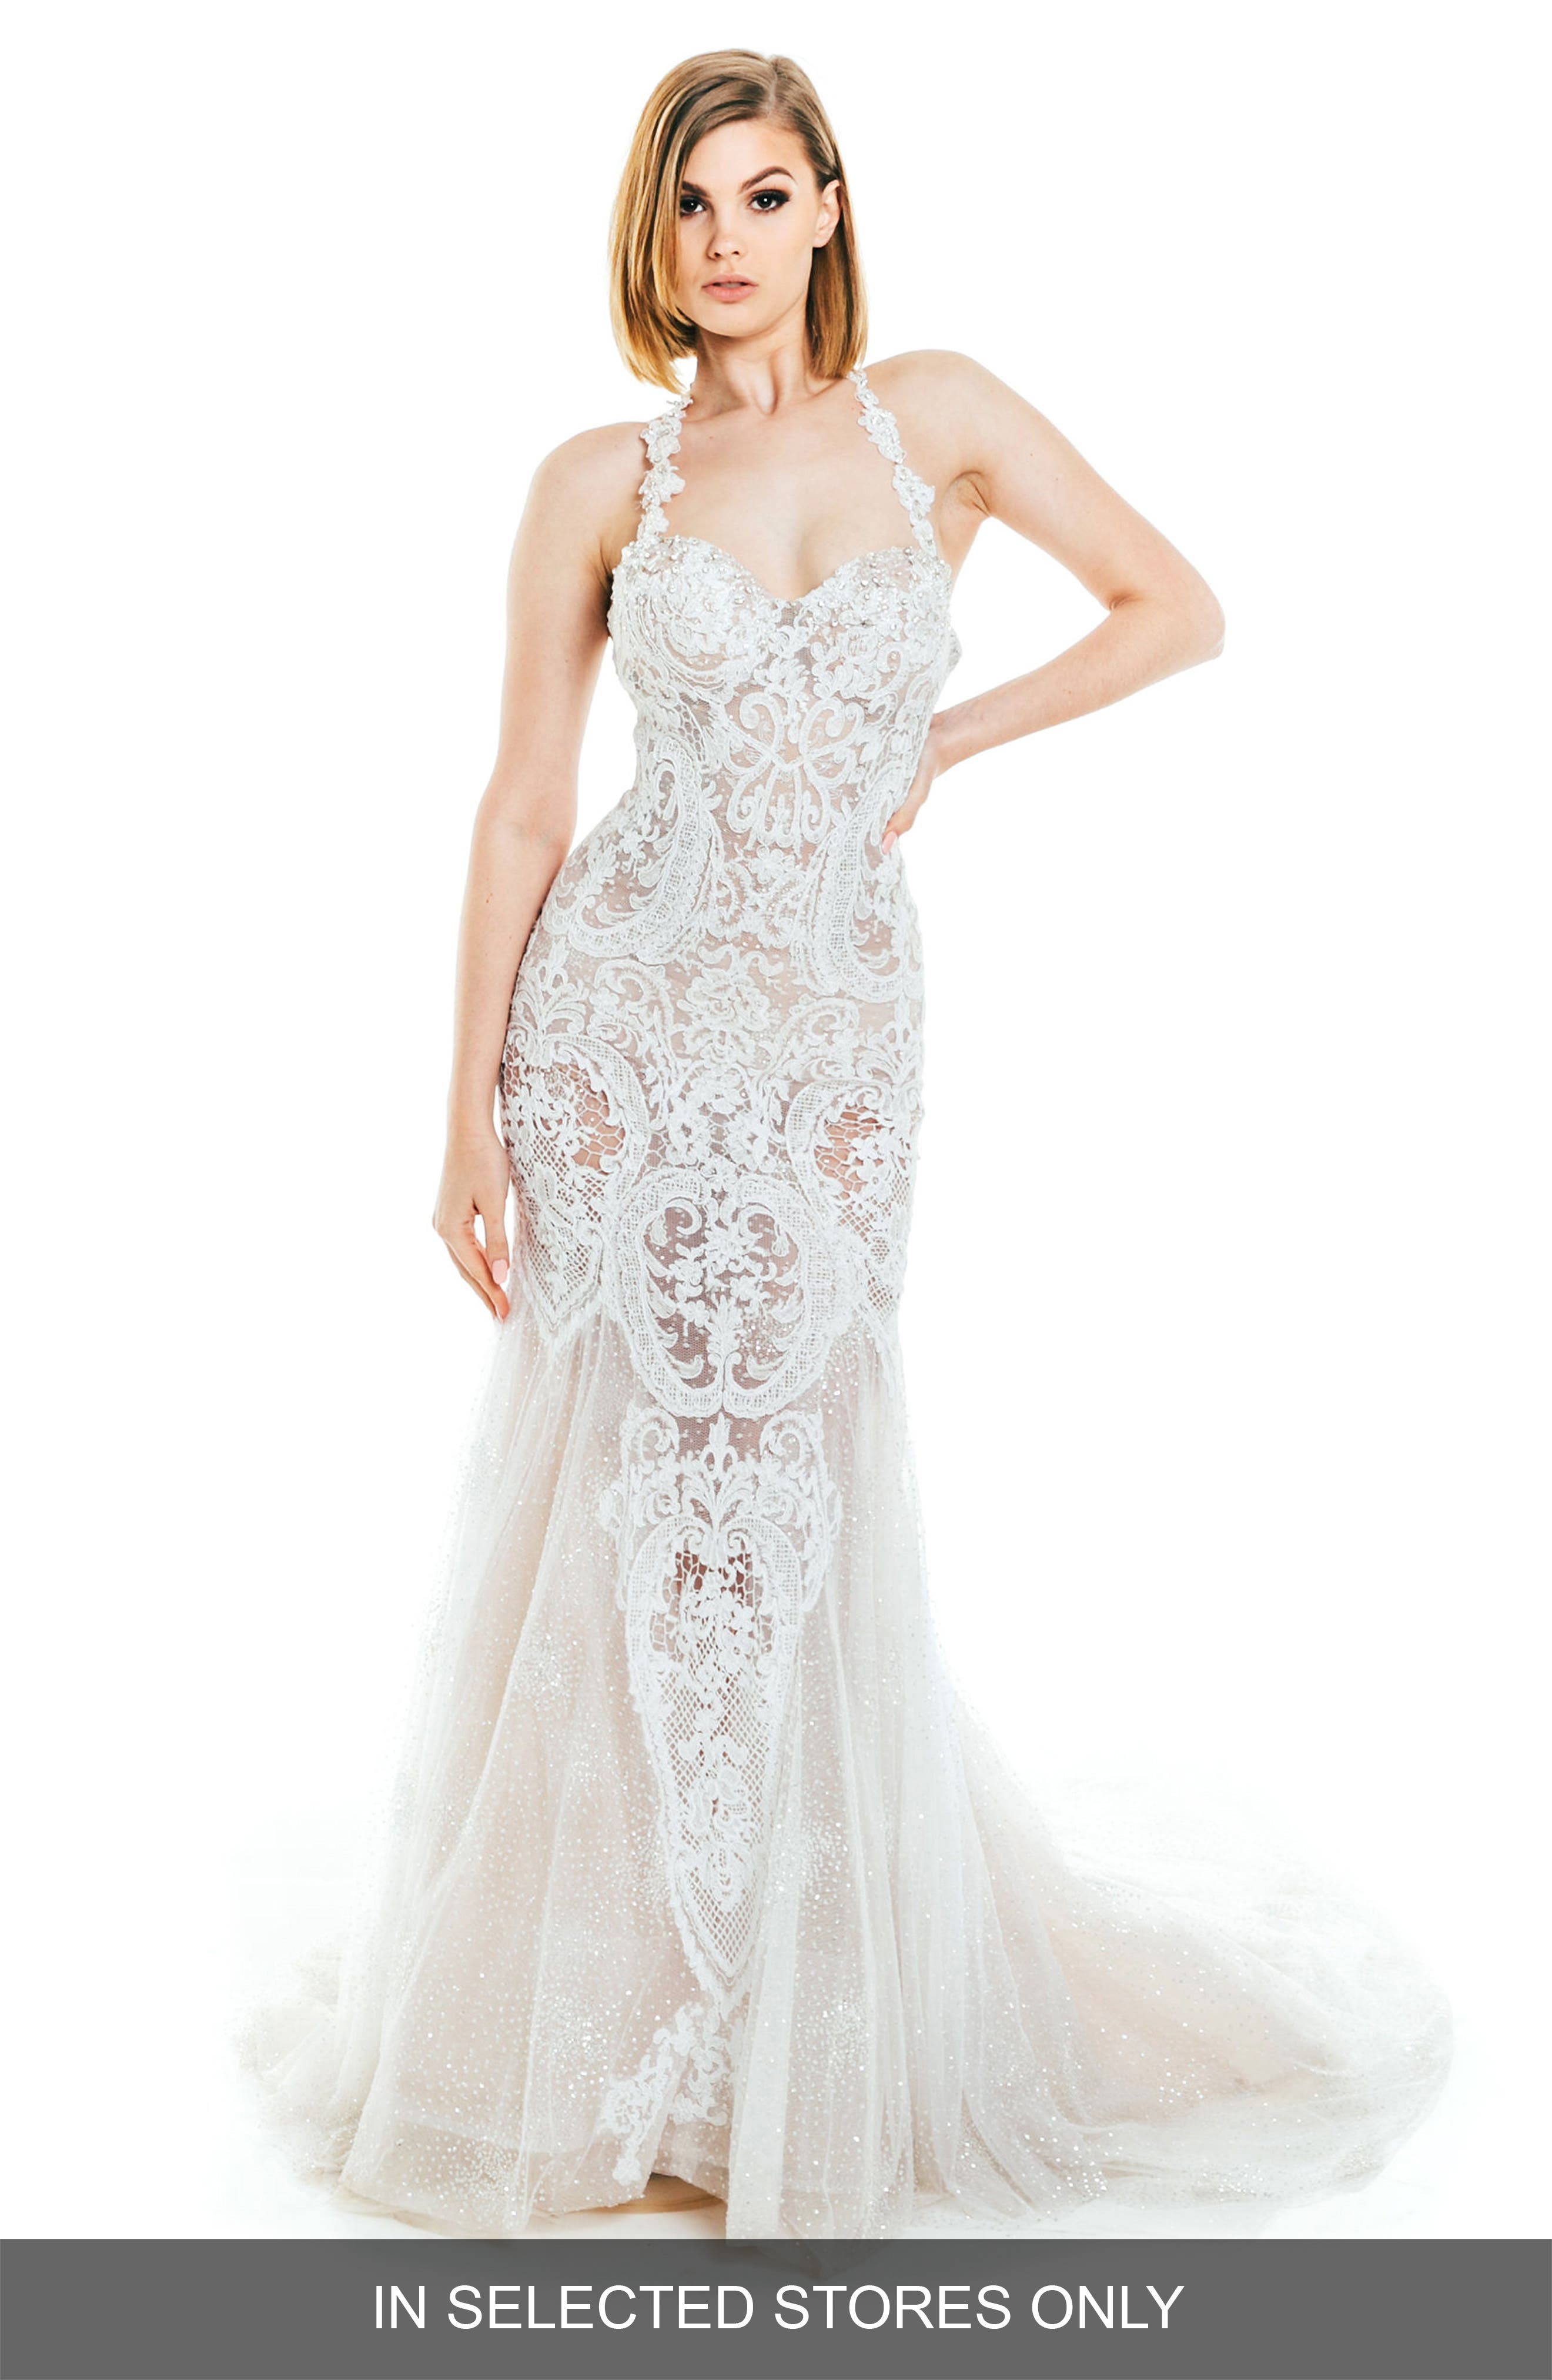 Olia Zavozina Lena Beaded Lace Halter Gown (In Selected Stores Only)